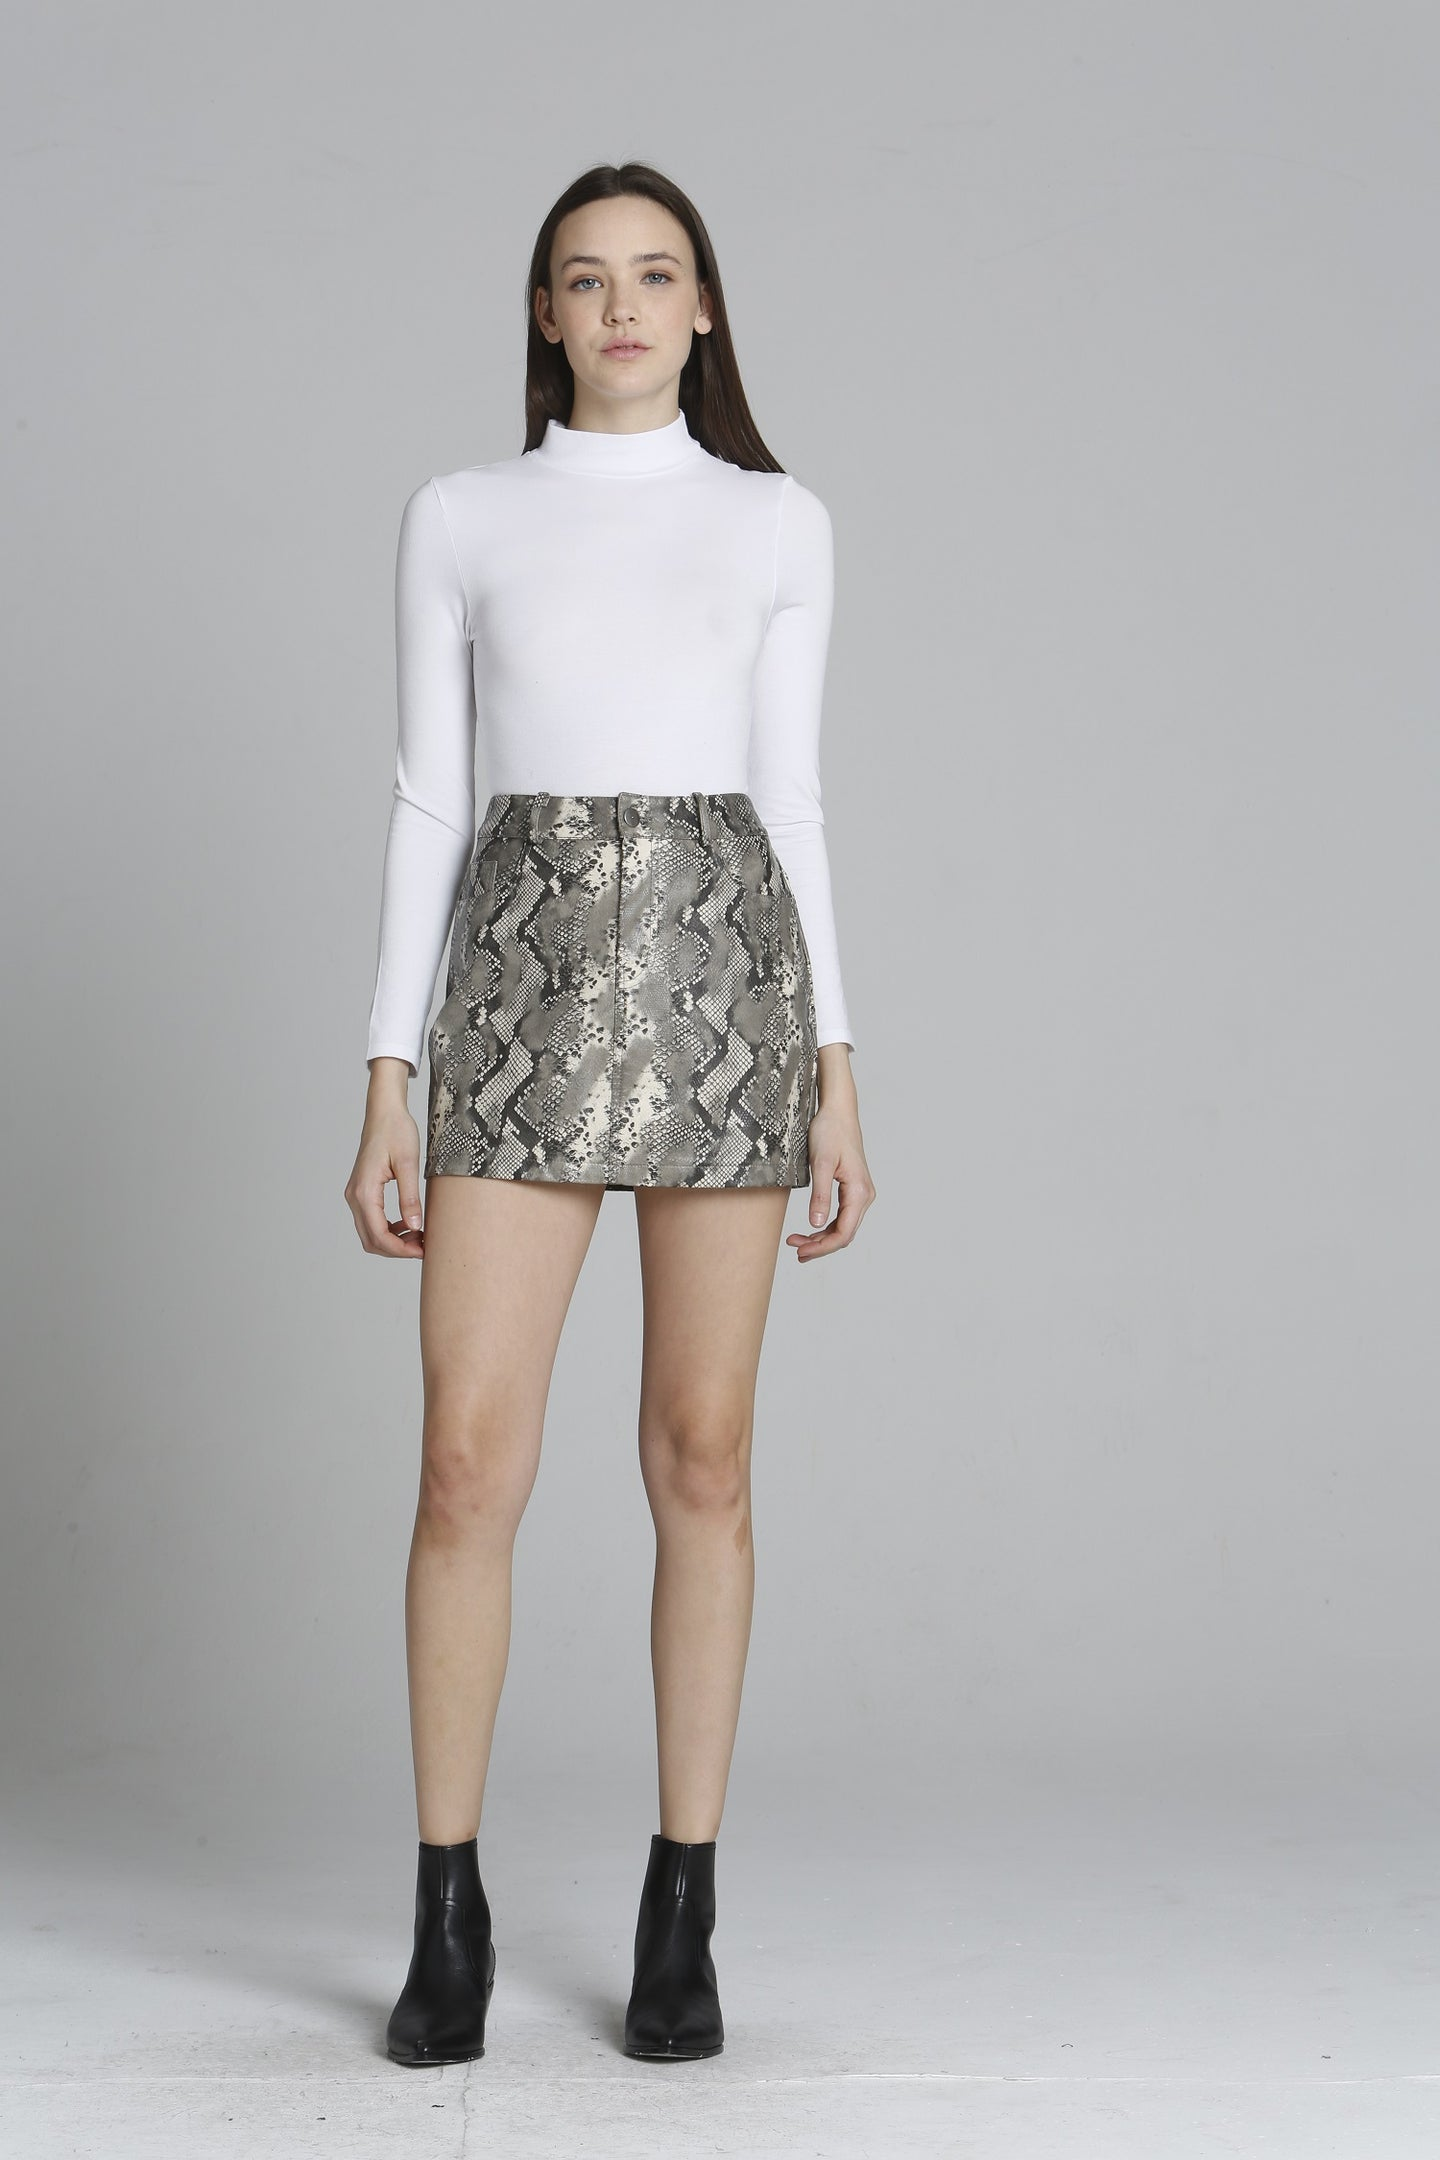 Snake Print PU Mini Skirt - Grey